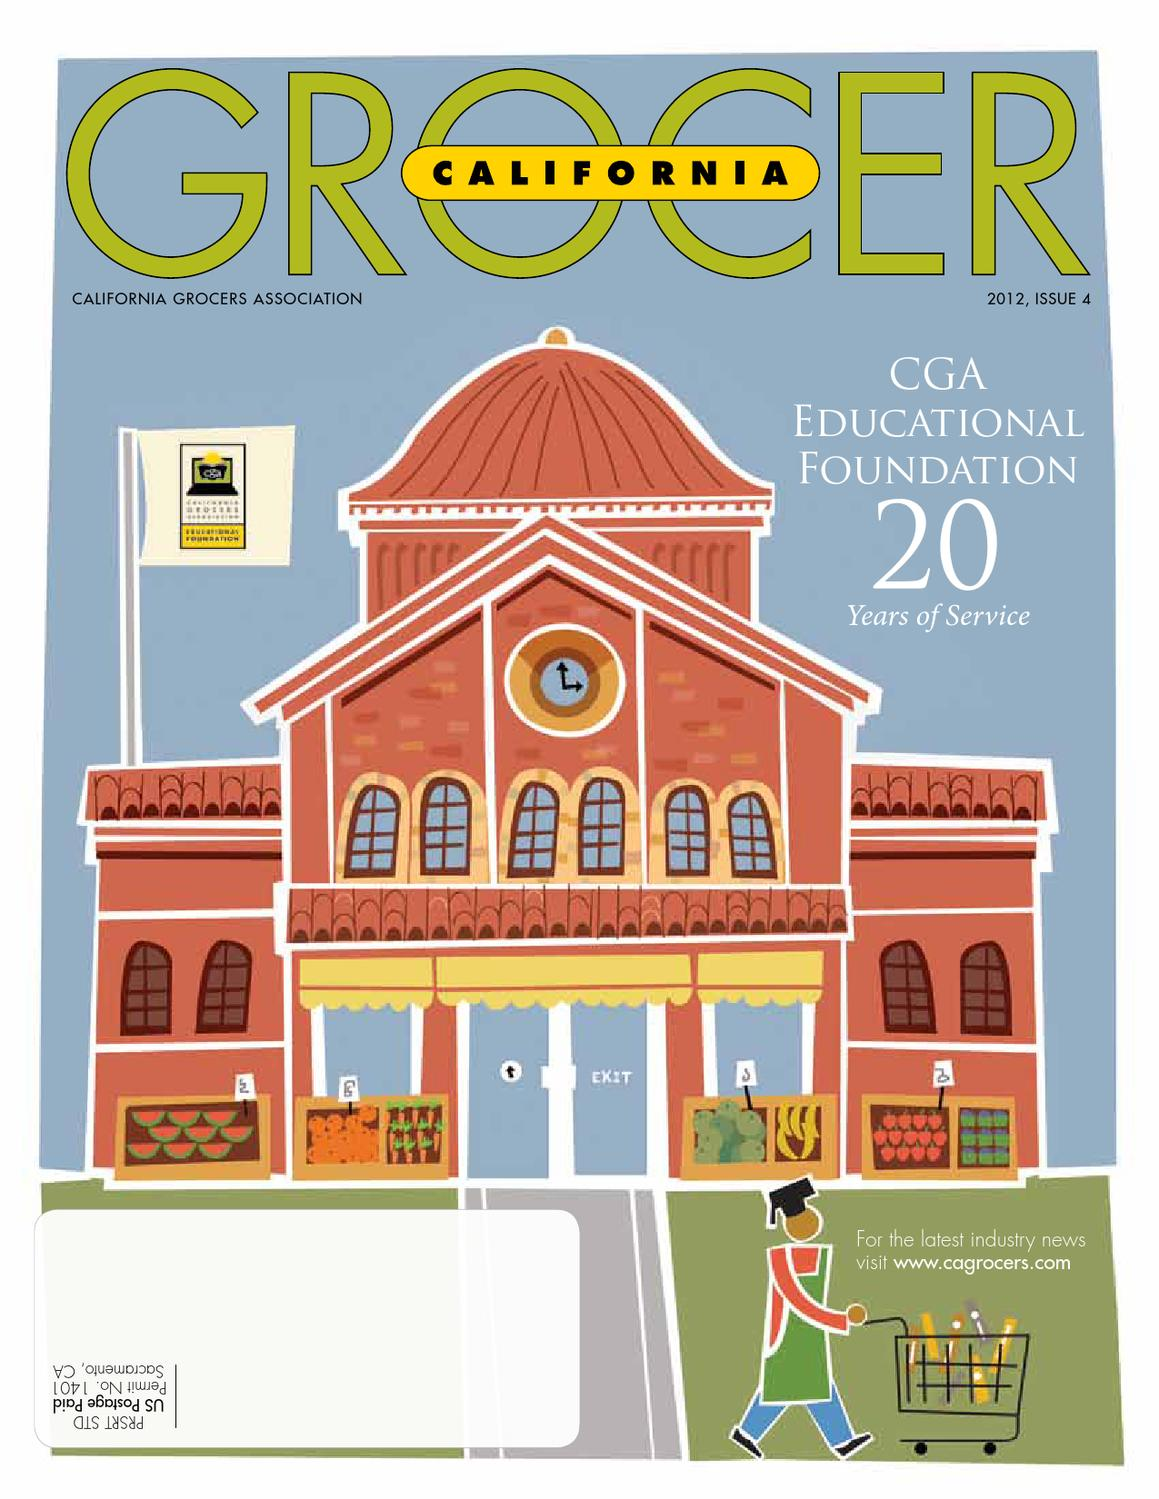 a place to call home by amy schisler reviews discussion a place called home book California Grocer, 2012, Issue 4